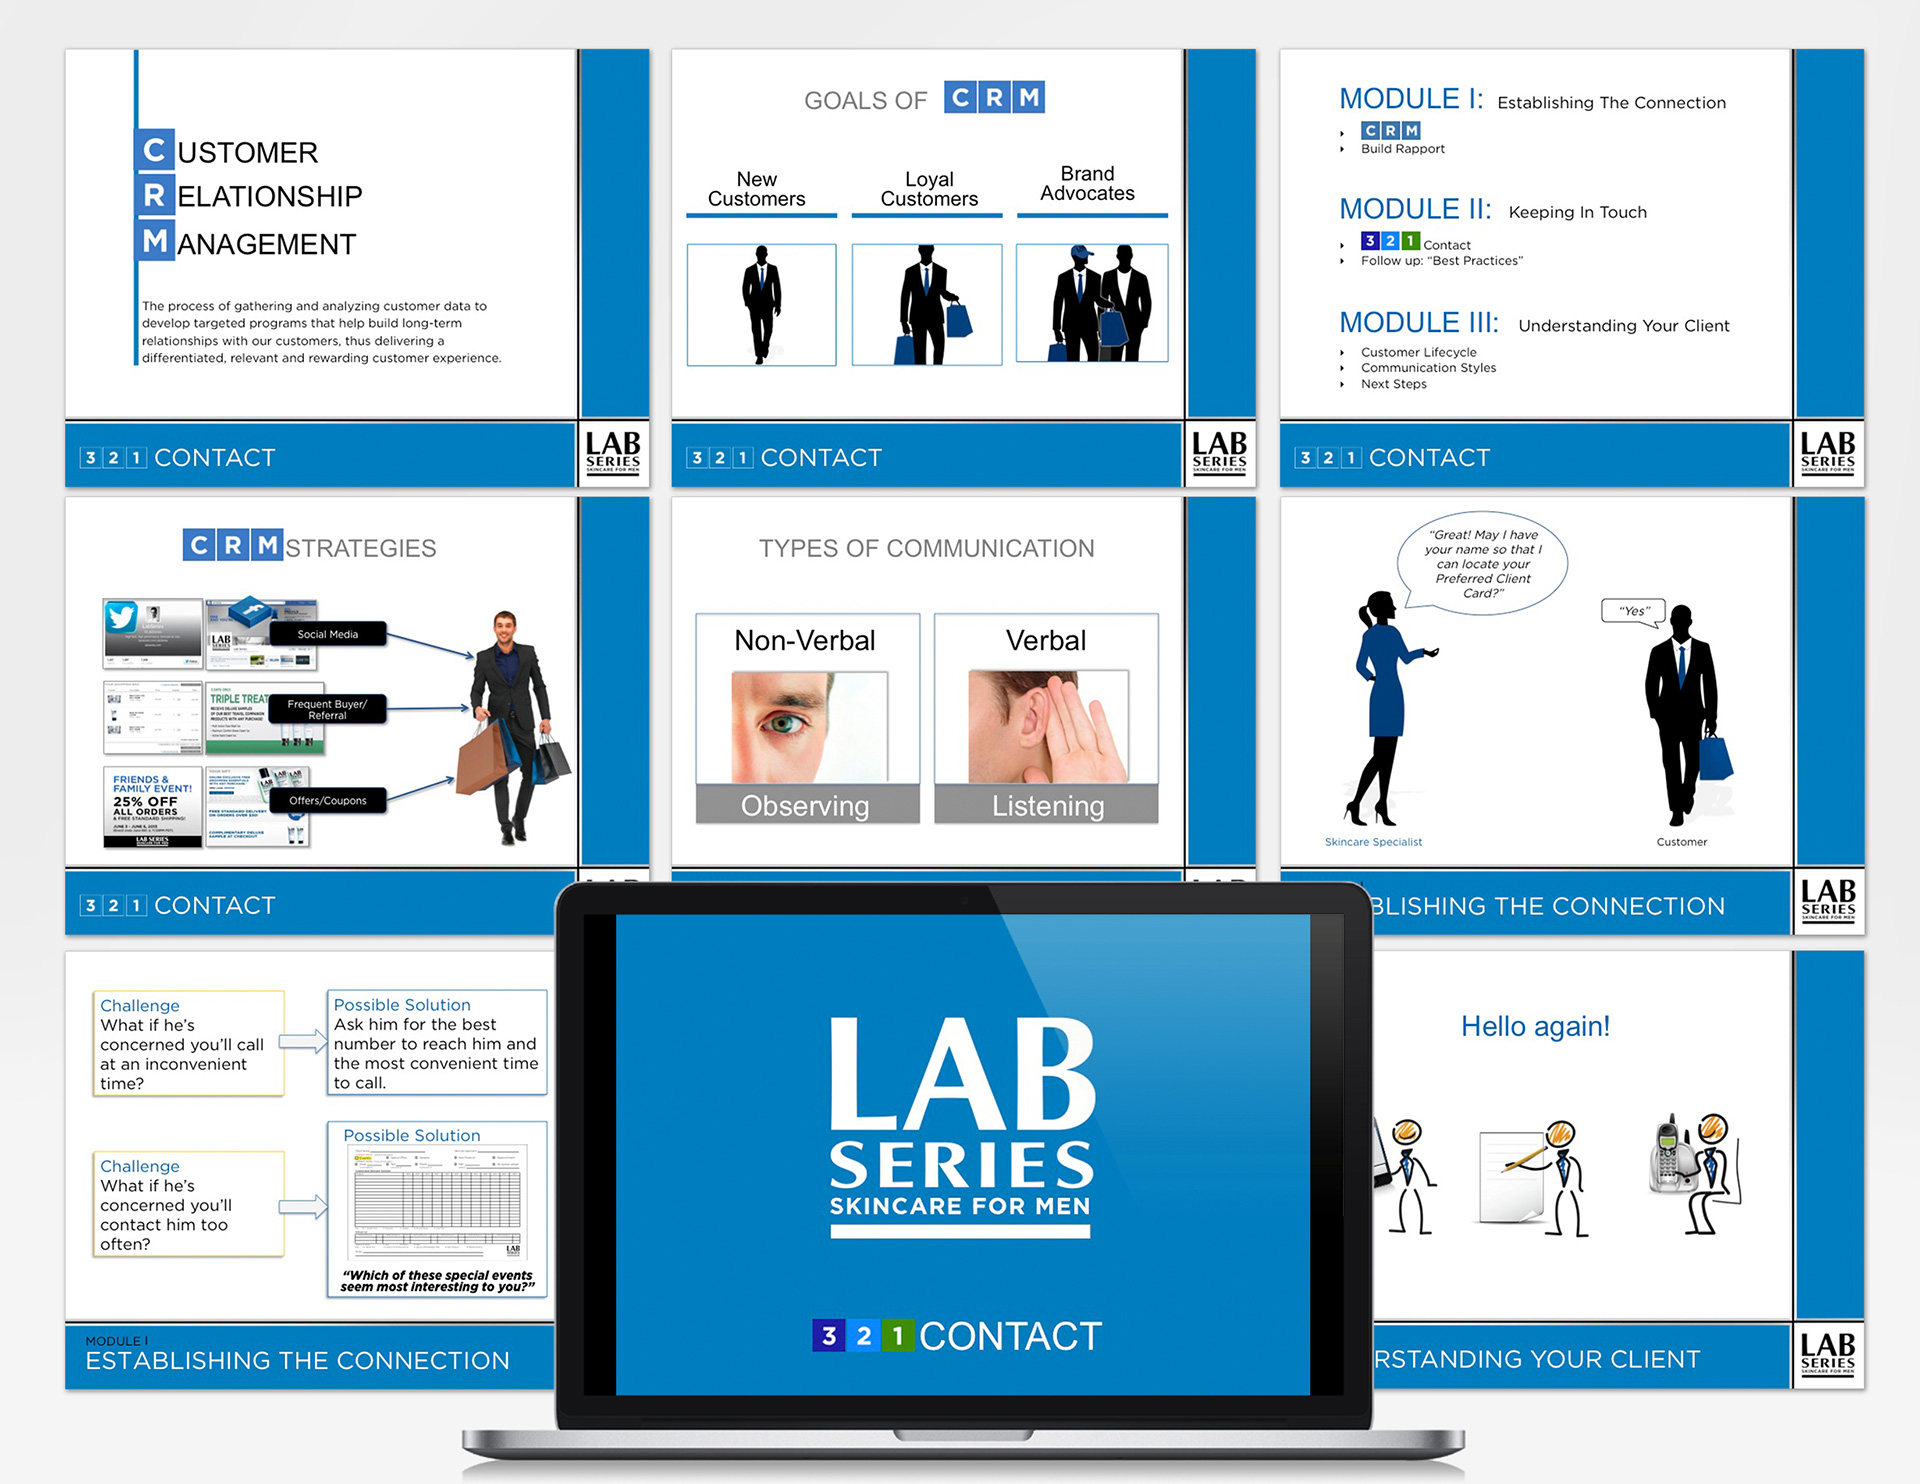 powerpoint_LabSeries